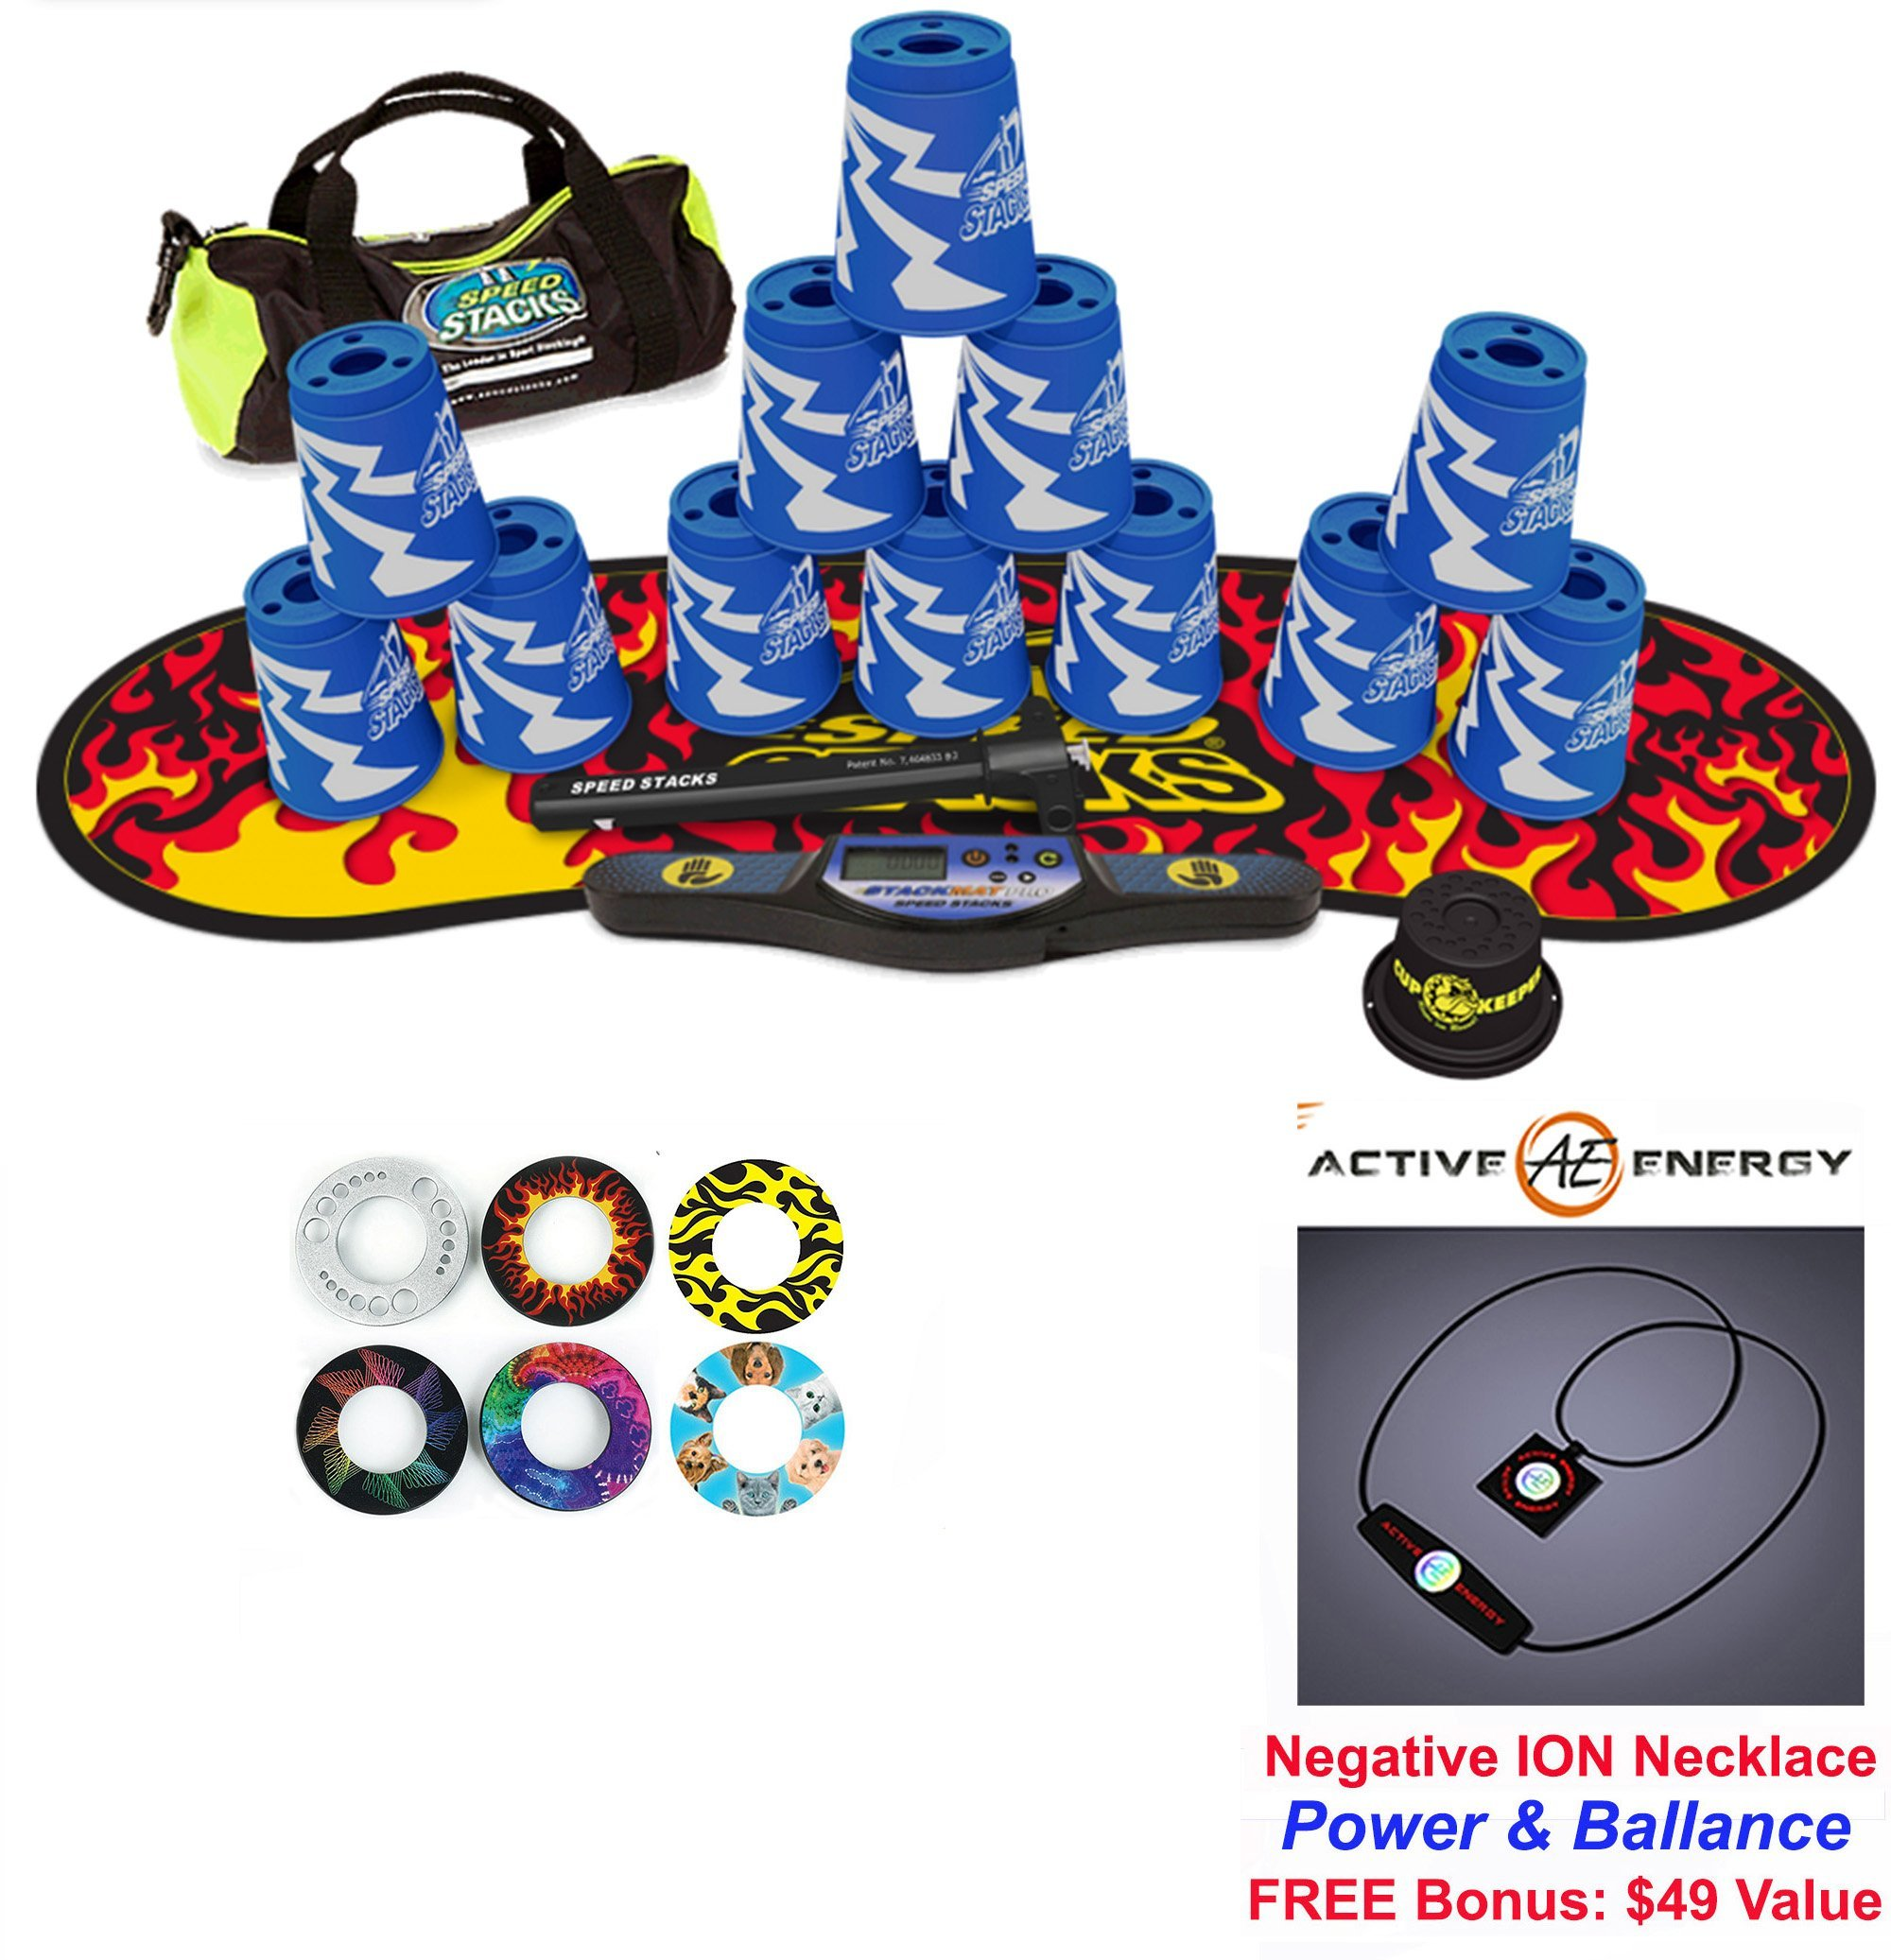 Speed Stacks Custom Combo Set - The Works: 12 ATOMIC PUNCH 4'' Cups, Cup Keeper, Quick Release Stem, Pro Timer, Gen 3 Premium Black Flame Mat, 6 Snap Tops, Gear Bag + FREE: Active Energy Necklace $49